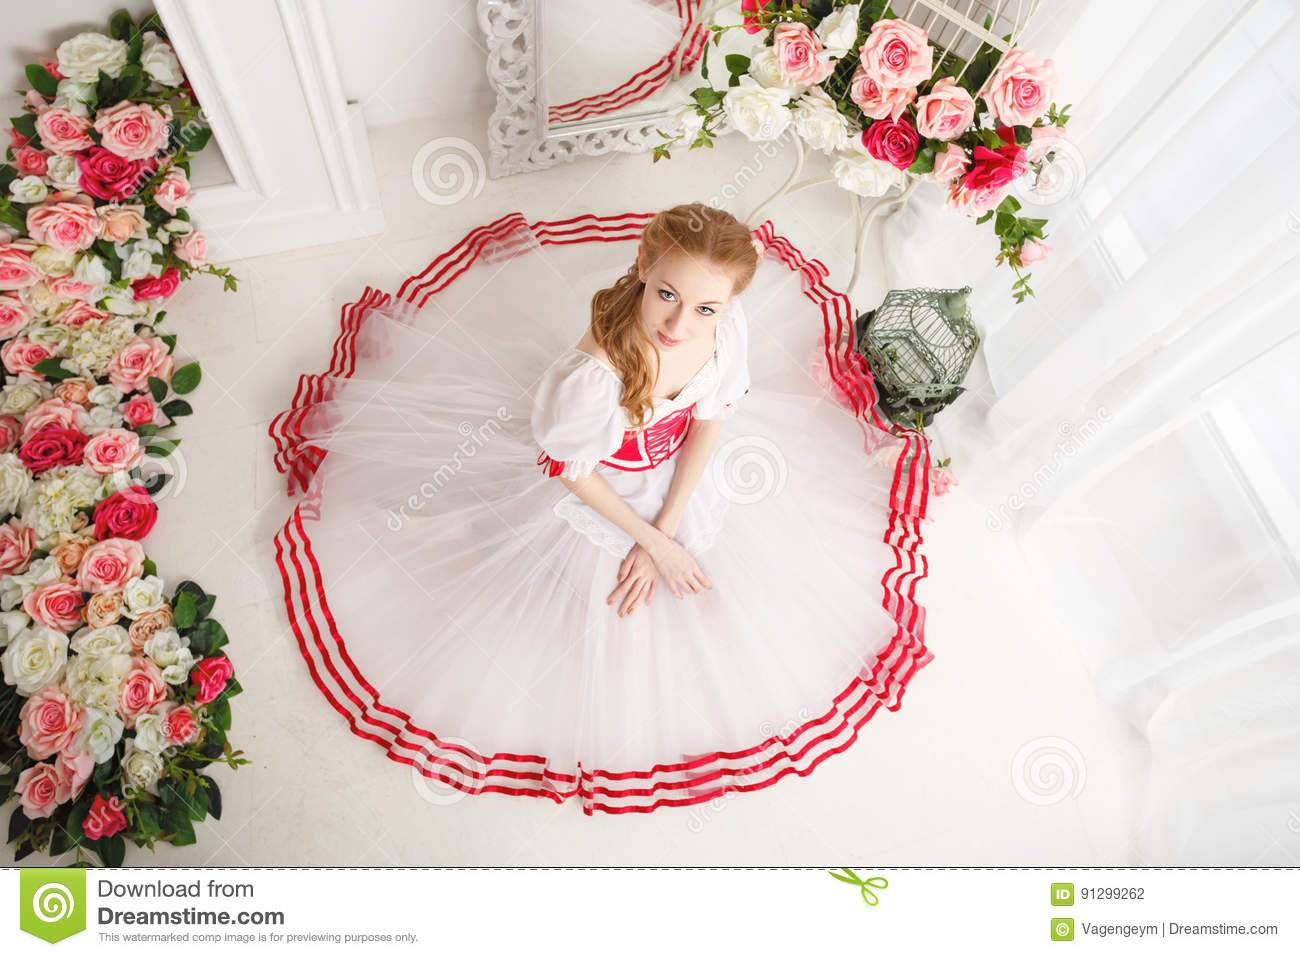 35781abc2863 A sweet ballerina in a scenic costume and bouquets of spring flowers. Retro  dress. She sits on the floor. High angle shooting